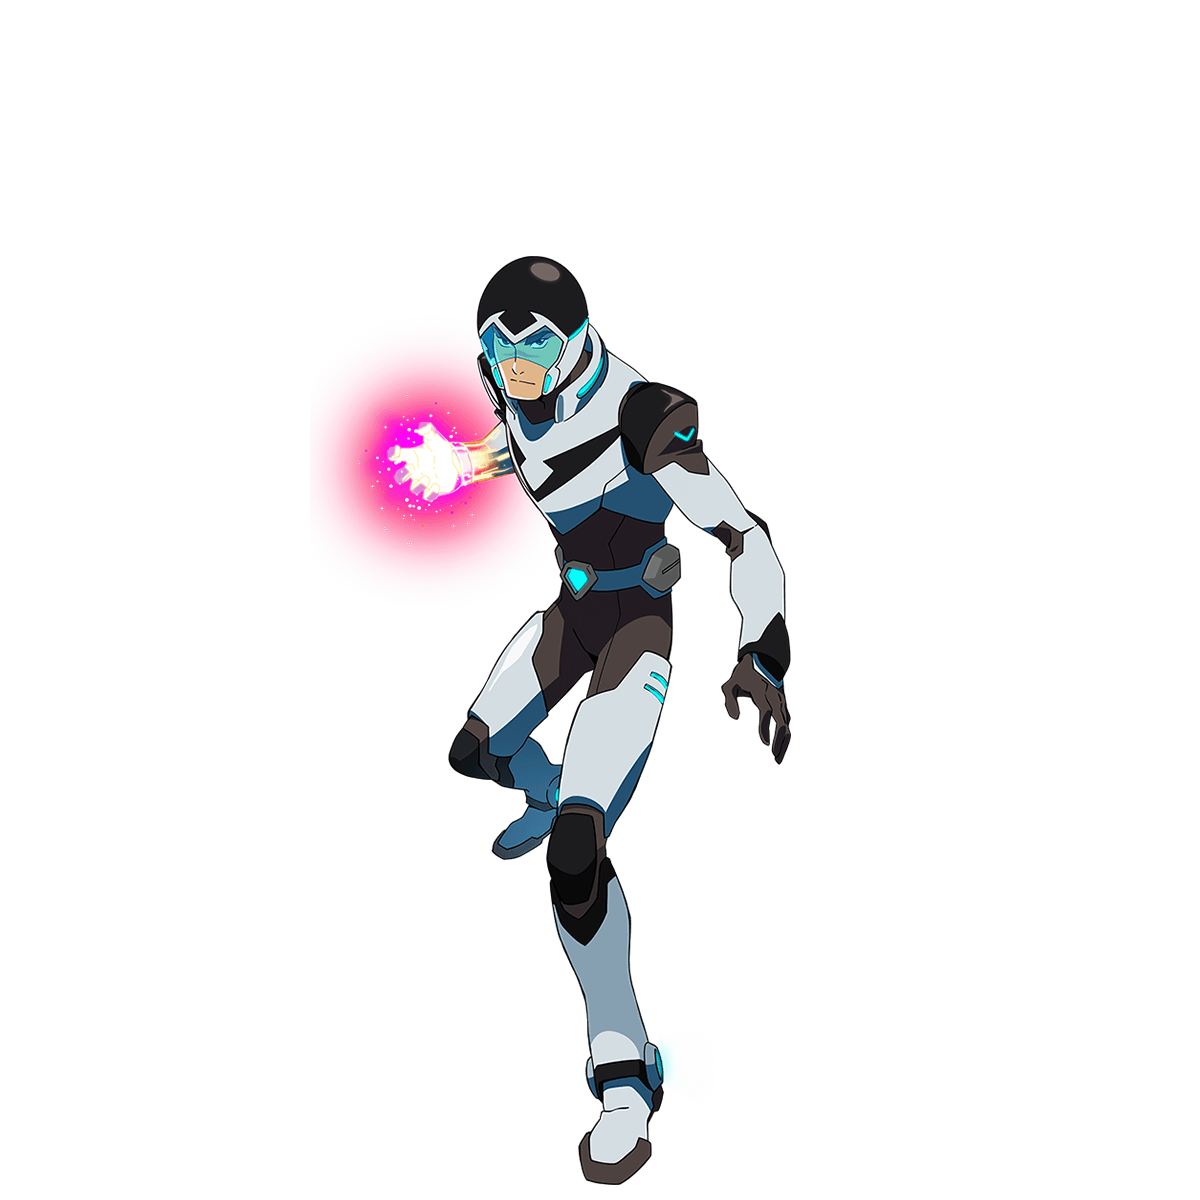 Transparent voltron shiro legendary defender. Anime official collectoons forums